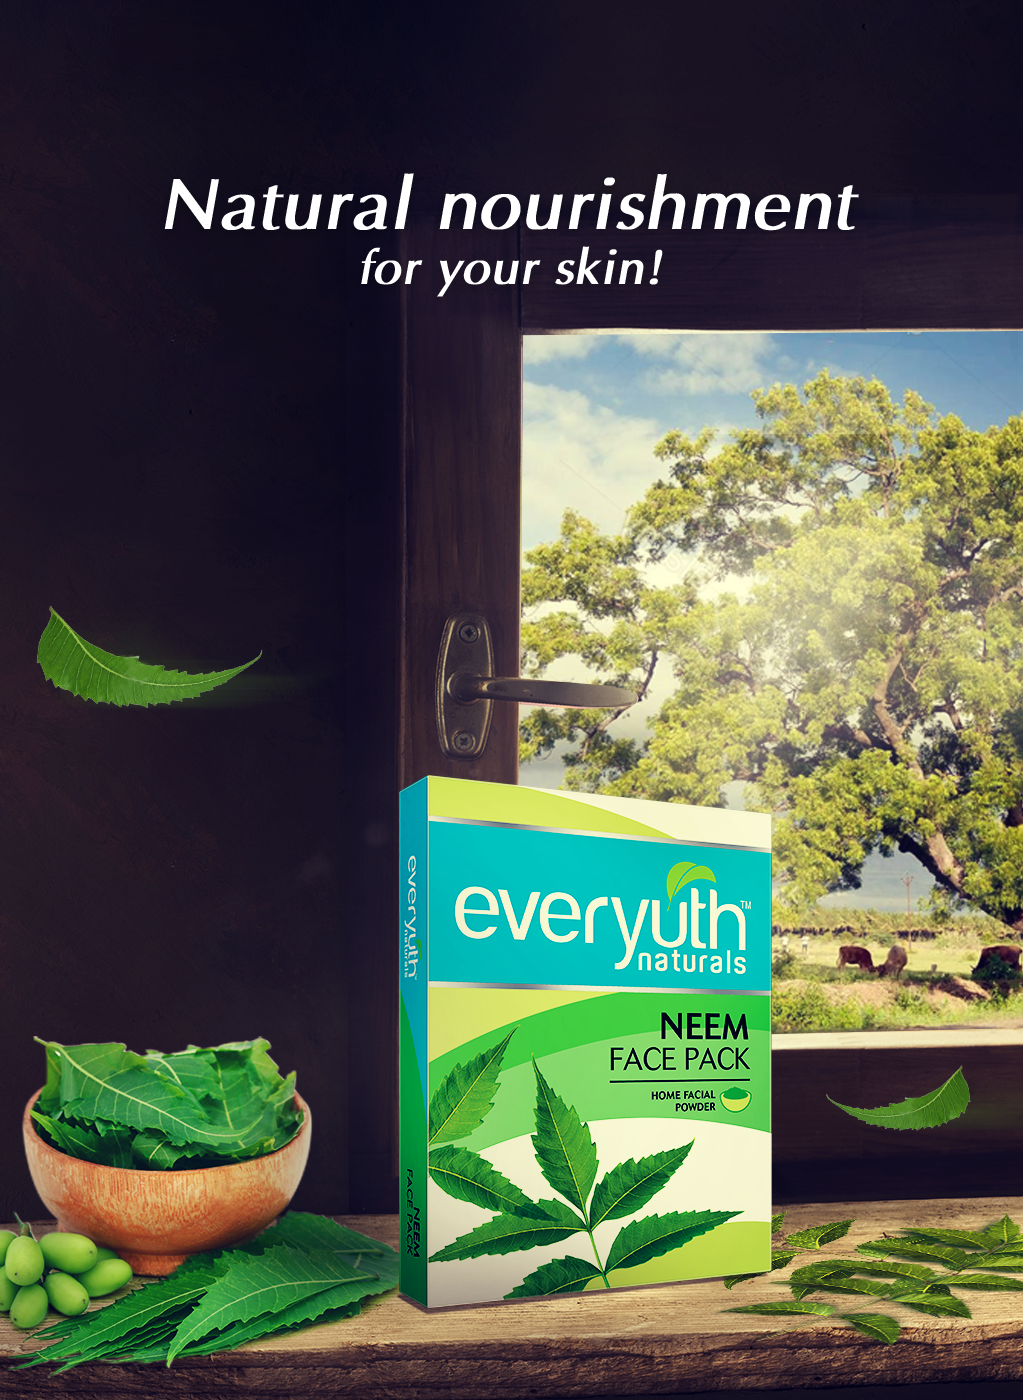 Neem Powder Face Pack from Everyuth Naturals